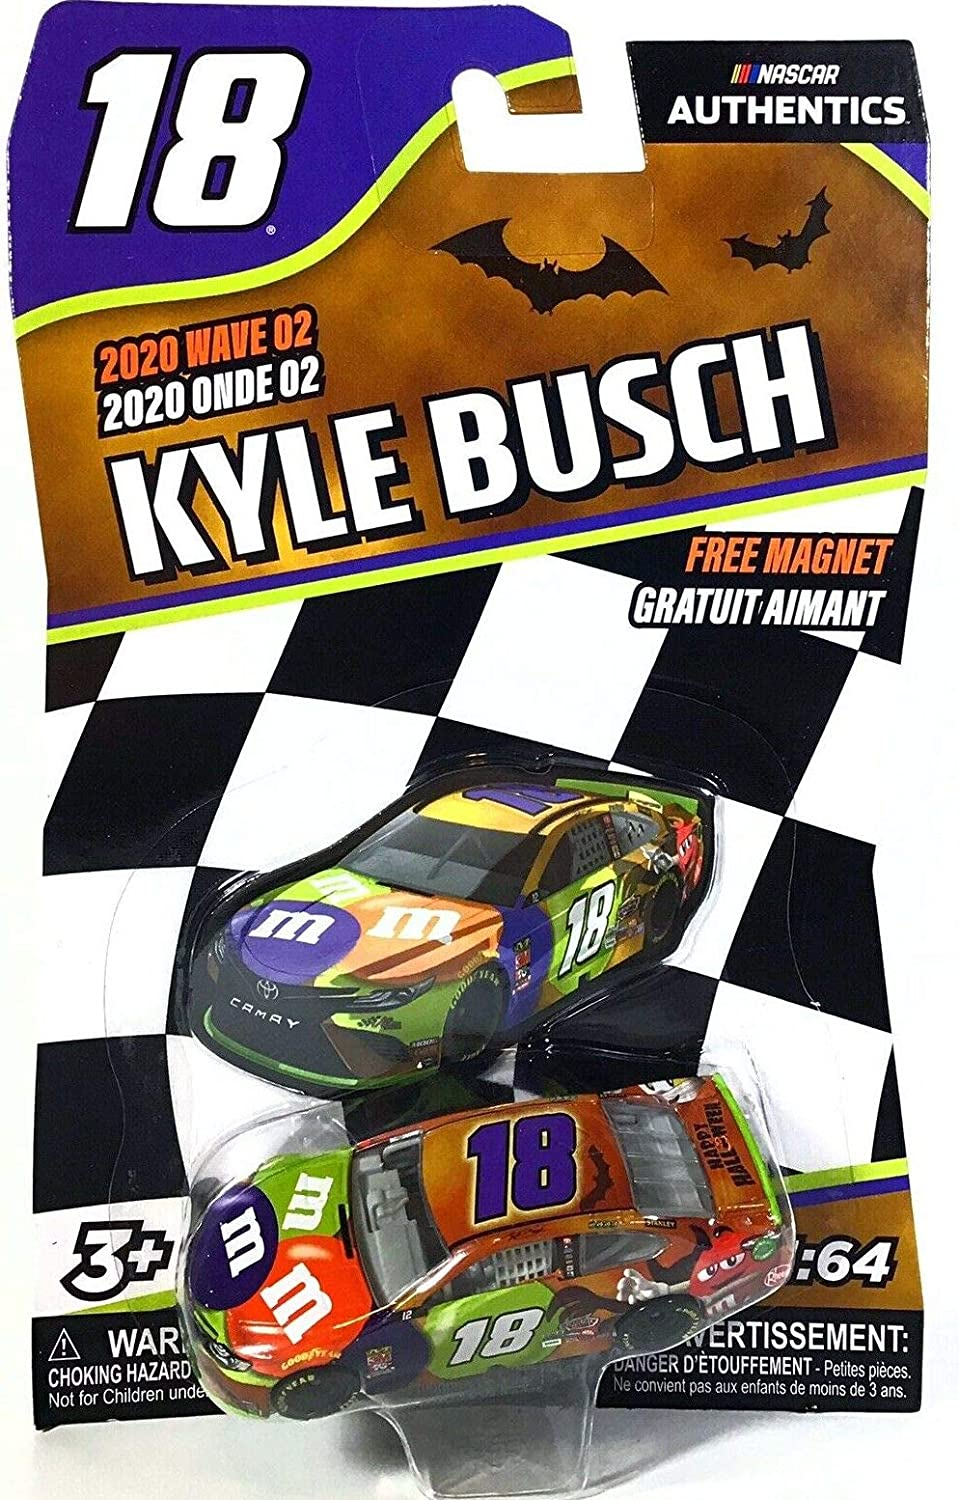 Kyle Busch Halloween 2020 Amazon.com: kingsdugout Kyle Busch #18 NASCAR Authentics 2020